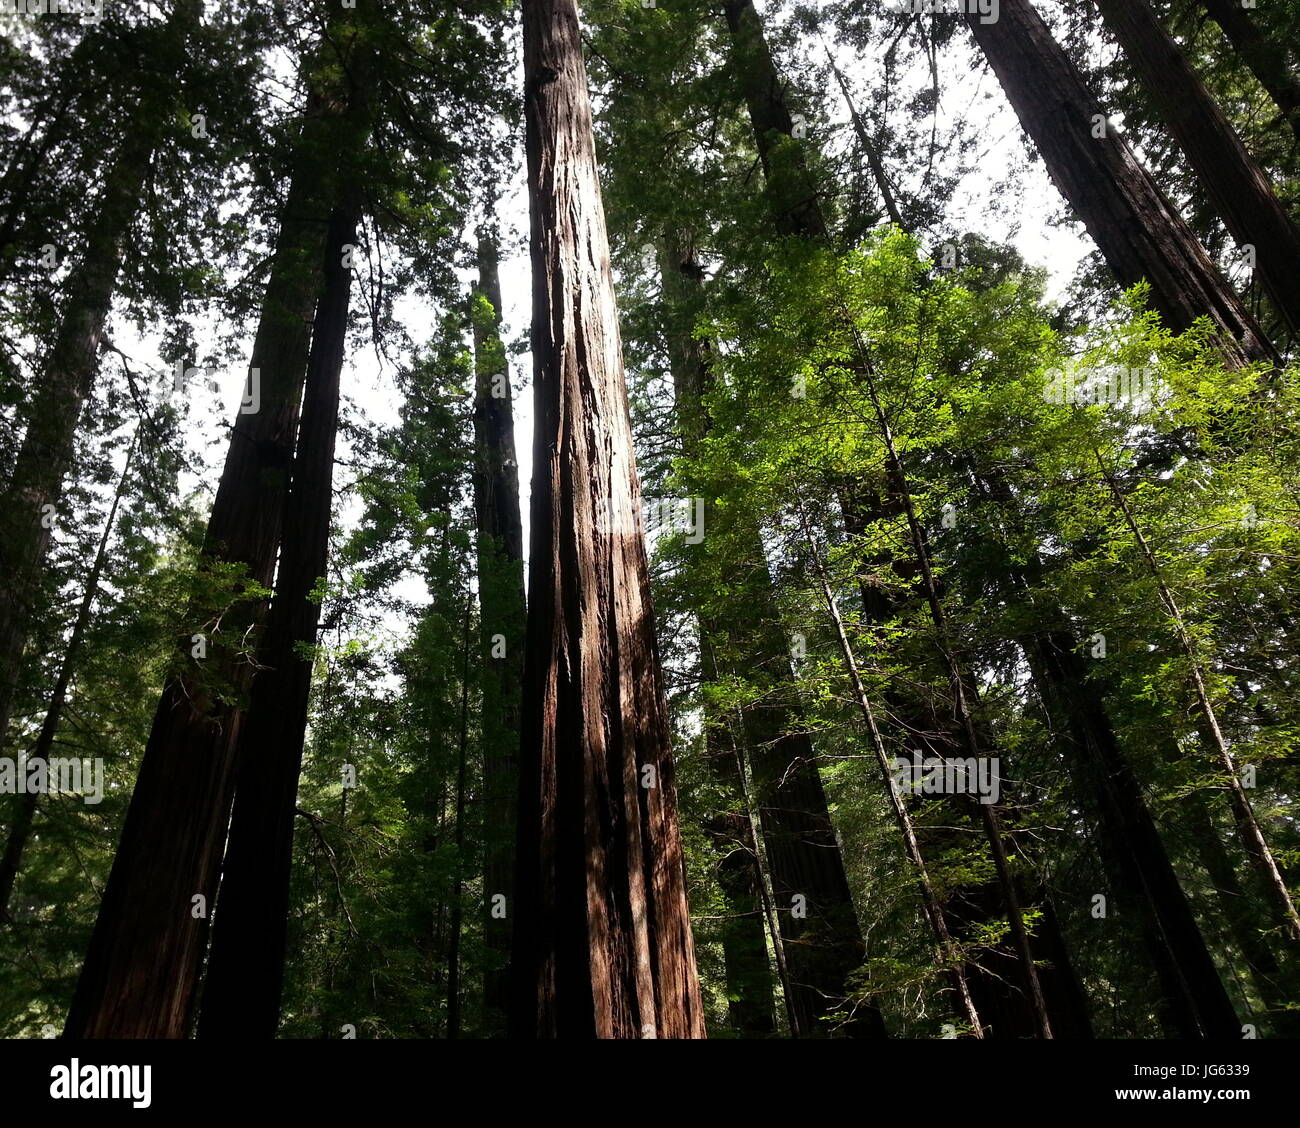 Magnificent Redwoods - Stock Image